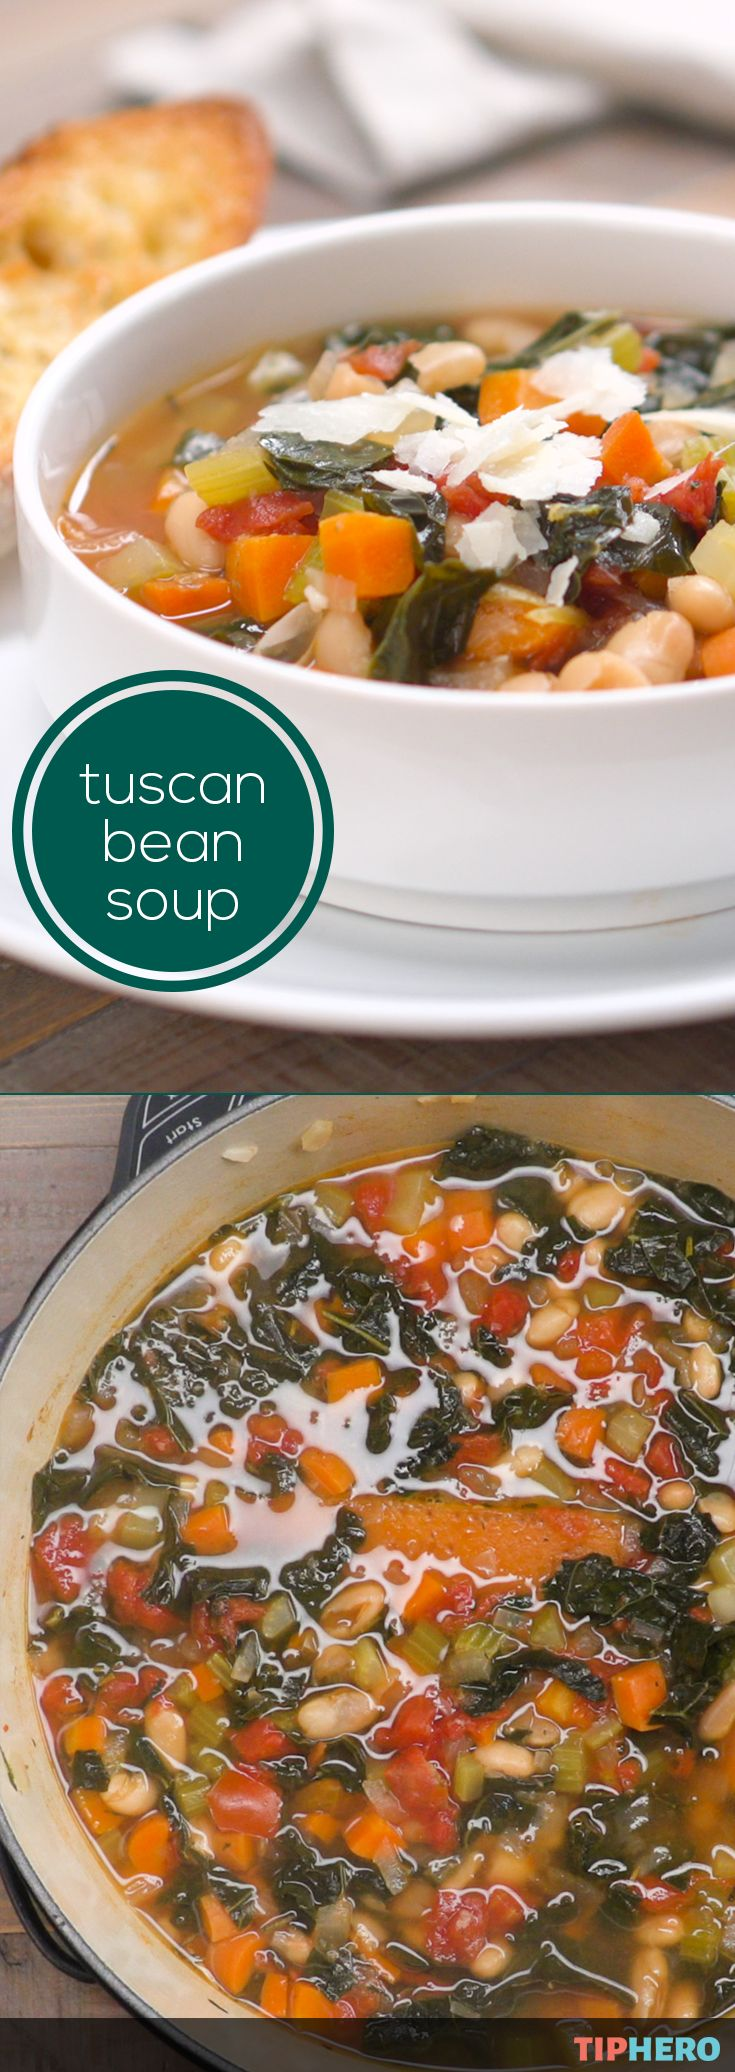 Our tuscan white bean and kale soup is a hearty, healthy, soup that will fill you up and warm you up! And better yet it only takes about 40 minutes to make so you'll be enjoying this delicious vegetarian soup -  in no time. The soup is loaded with beans, kale, carrots, onion, celery and tomatoes, so simply add parmesan and bread and serve for lunch or dinner. Also good for making in big batches and freezing for later. Click for the recipe and video.